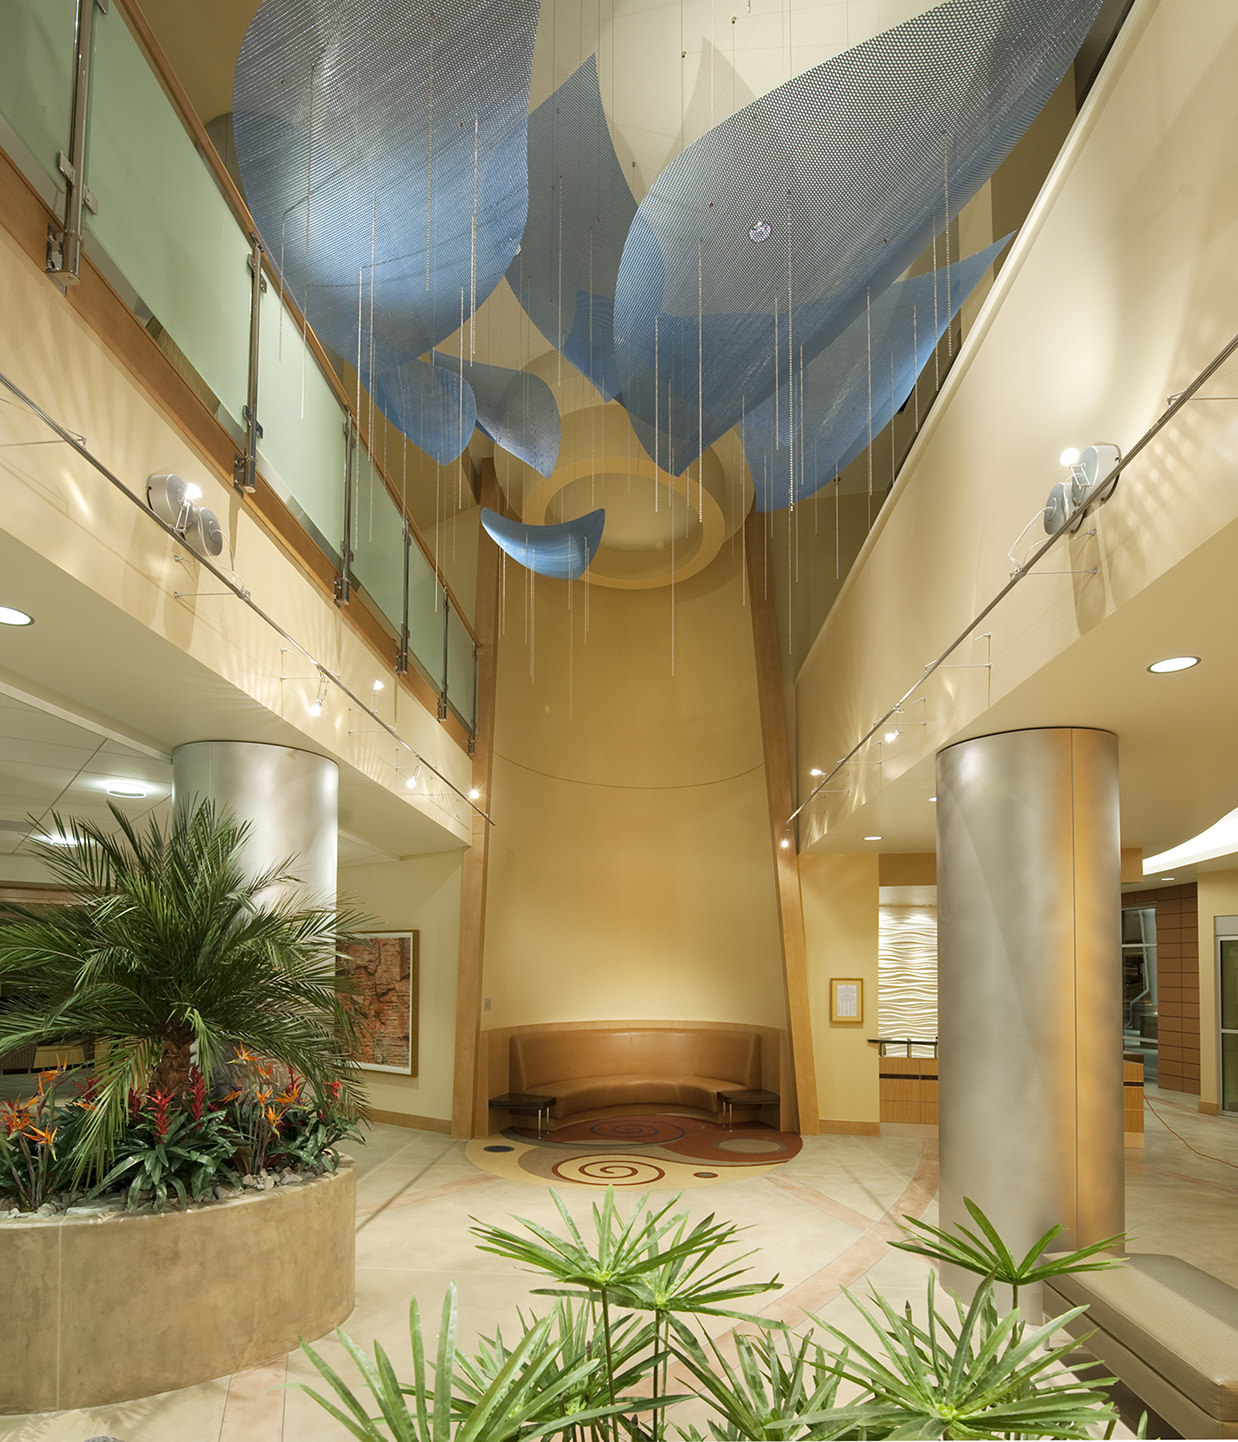 Crescendo suspended sculpture by Talley Fisher in George and Julia Argyros Health Center